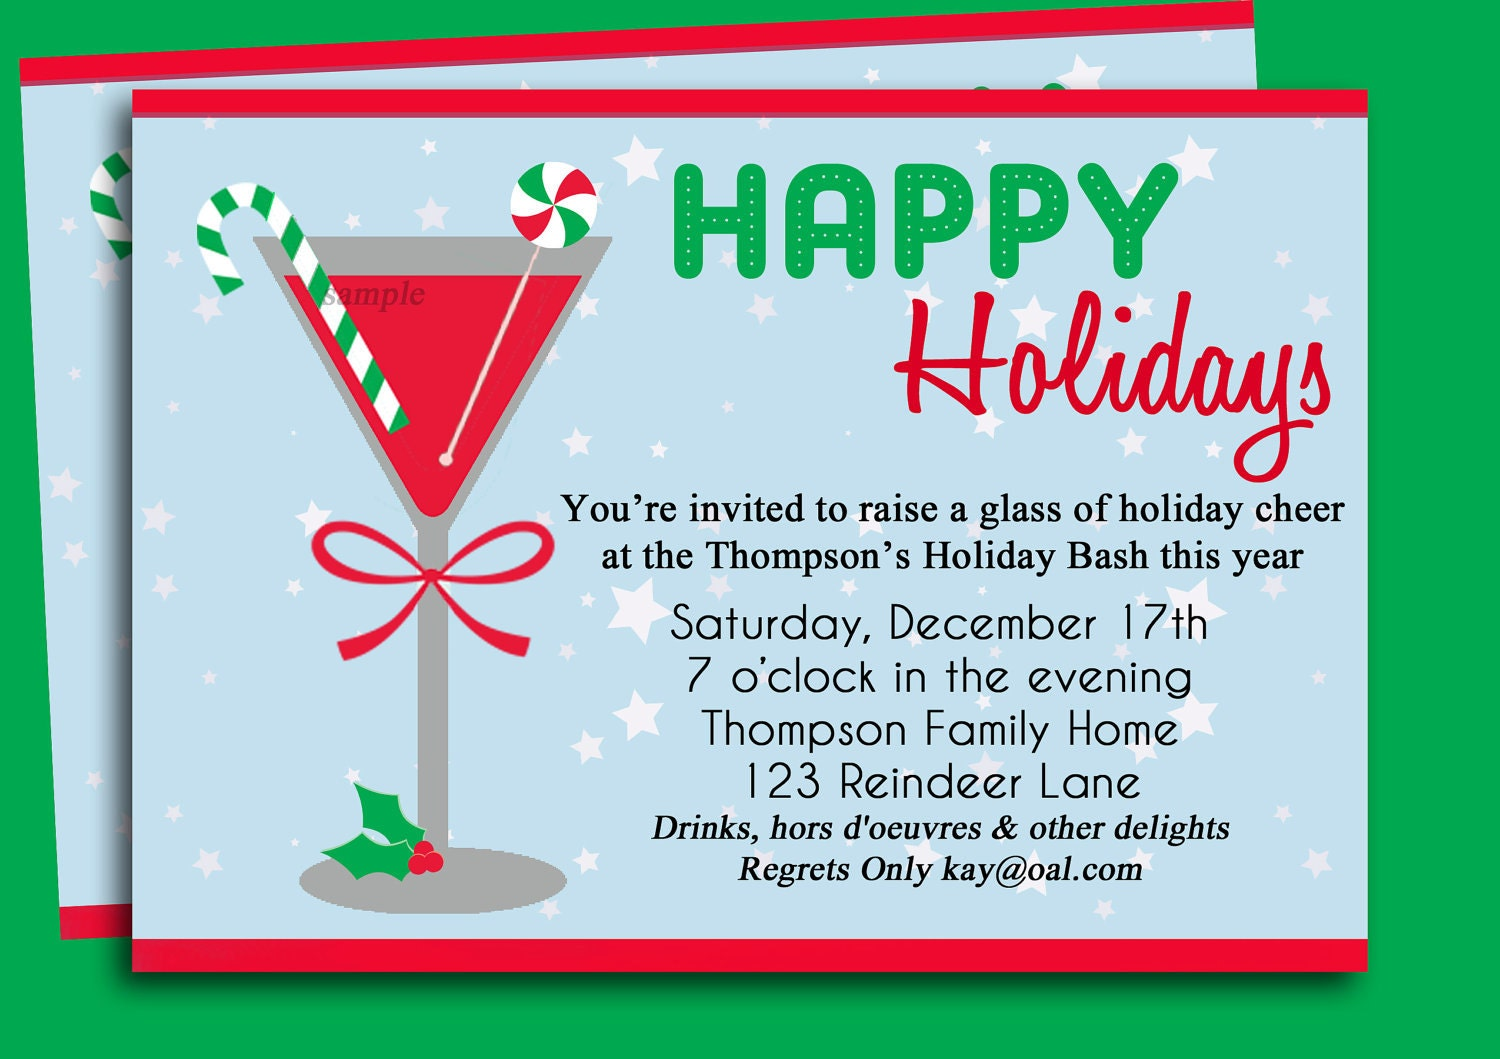 Christmas Cocktail Party Invitation Printable Holiday – Holiday Office Party Invitation Templates